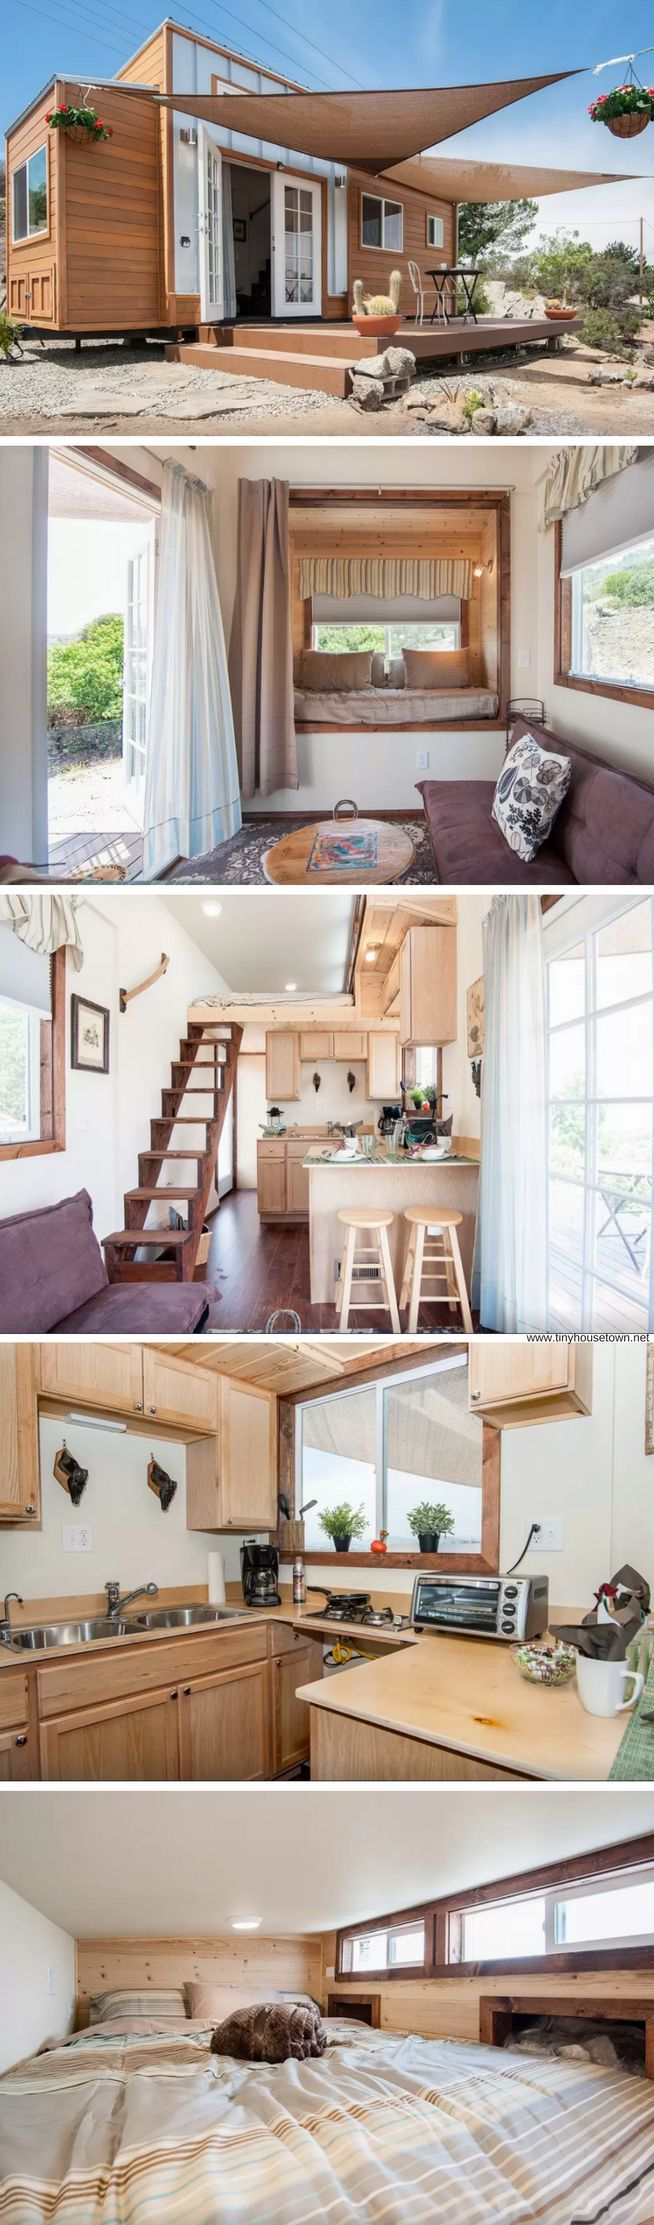 Container House   The Zen Cottage: A SoCal Tiny House With A Comfortable,  Modern Style   Who Else Wants Simple Step By Step Plans To Design And Build  A ...